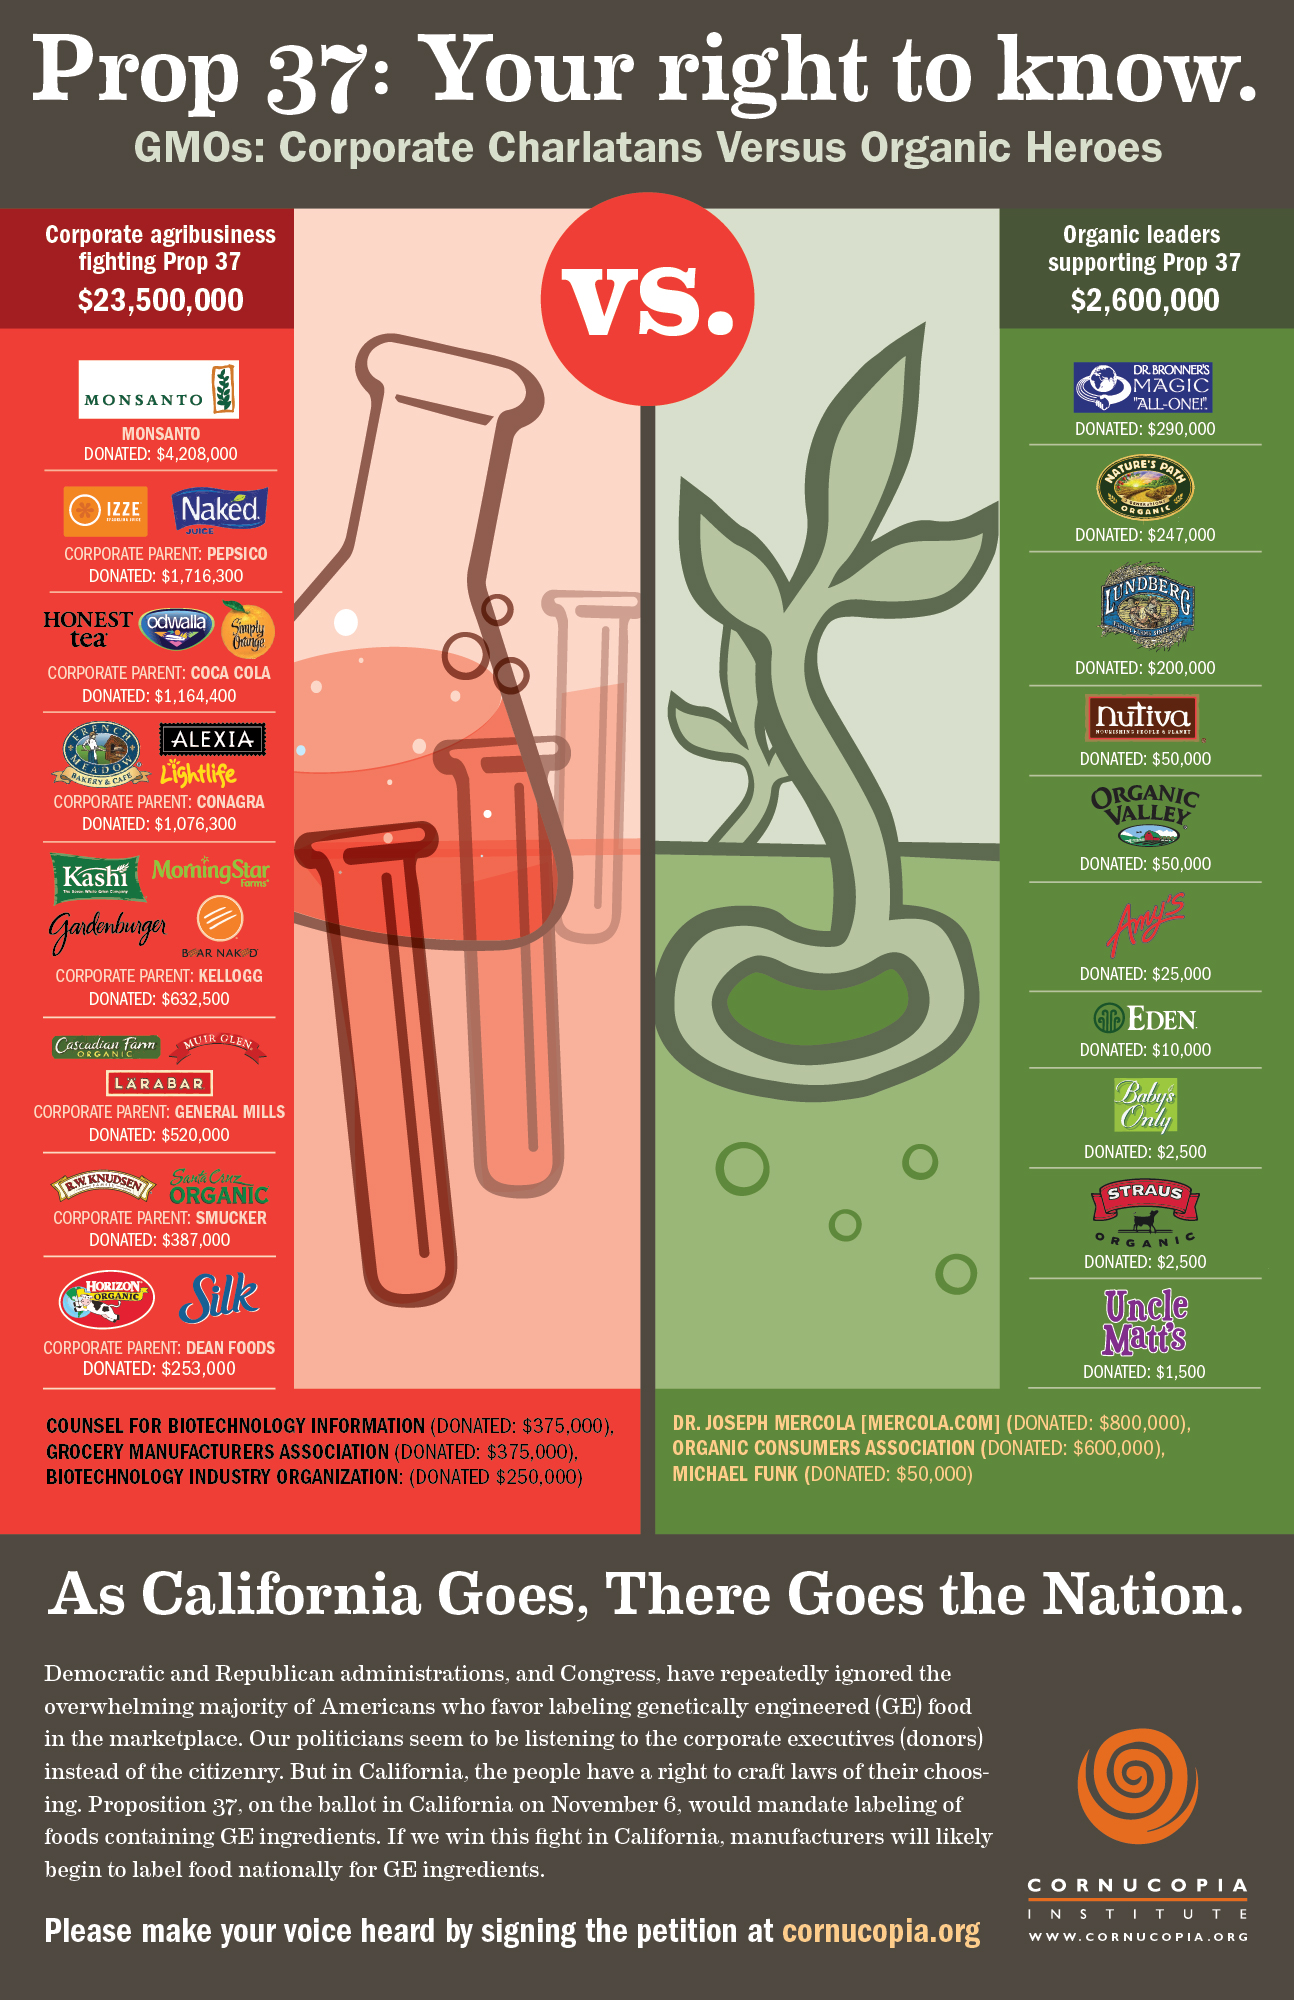 http://www.organicauthority.com/foodie-buzz/natural-foods-fighting-gmo-labeling.html